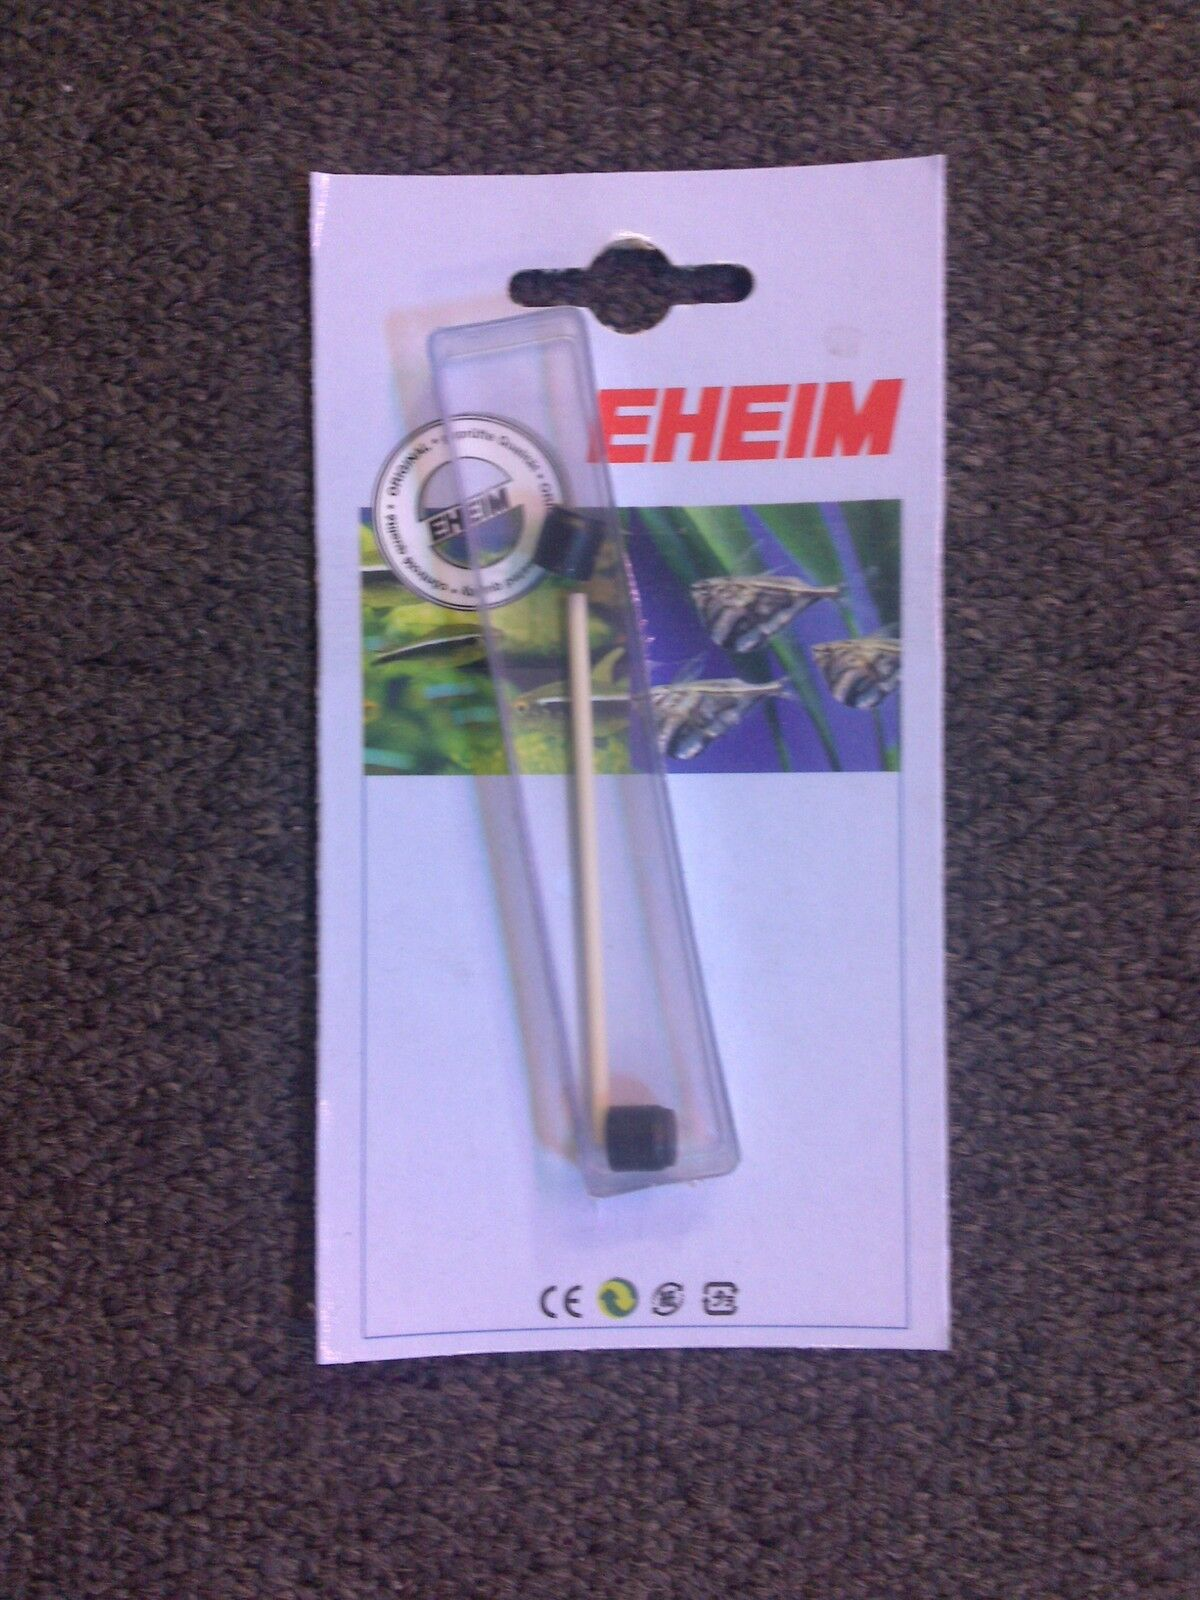 Eheim impeller shaft 7433720 to suit 1048, 2222 & 2224 Eheim filters